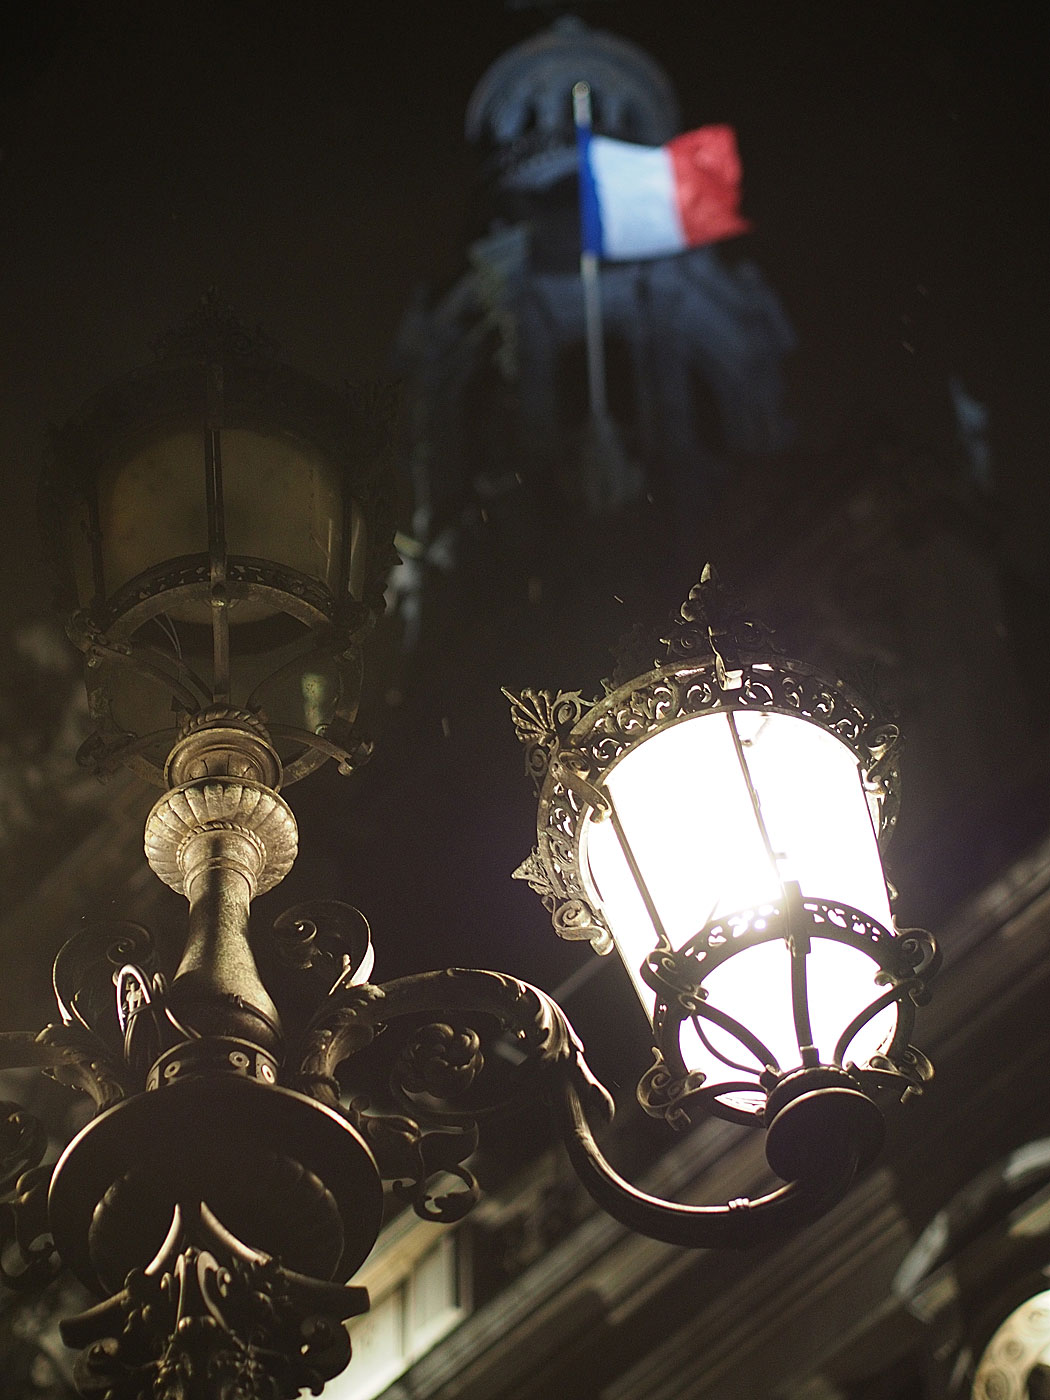 The French national flag floats over the Hotel de Ville and its lamp posts in Paris. Olympus OM-D & Digital Zuiko 45mm f/1.8